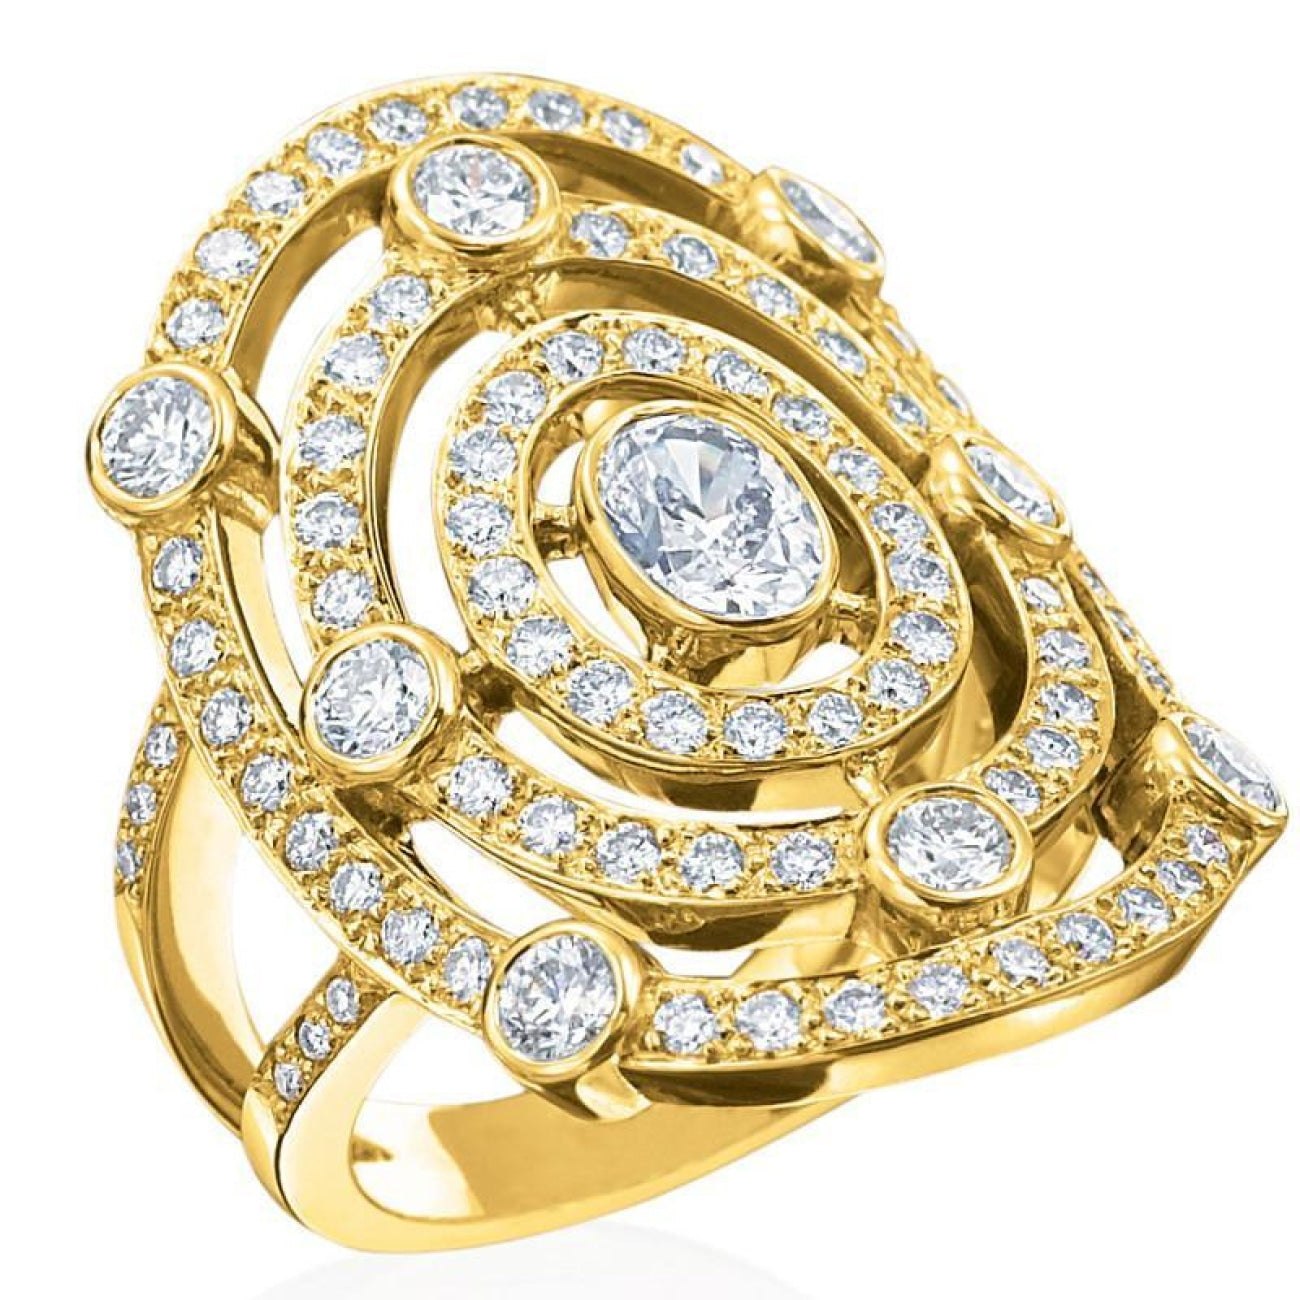 Gumuchian Jewelry - GUMUCHIAN CAROUSEL 18K GOLD DIAMOND ILLUSION HALO RING | Manfredi Jewels